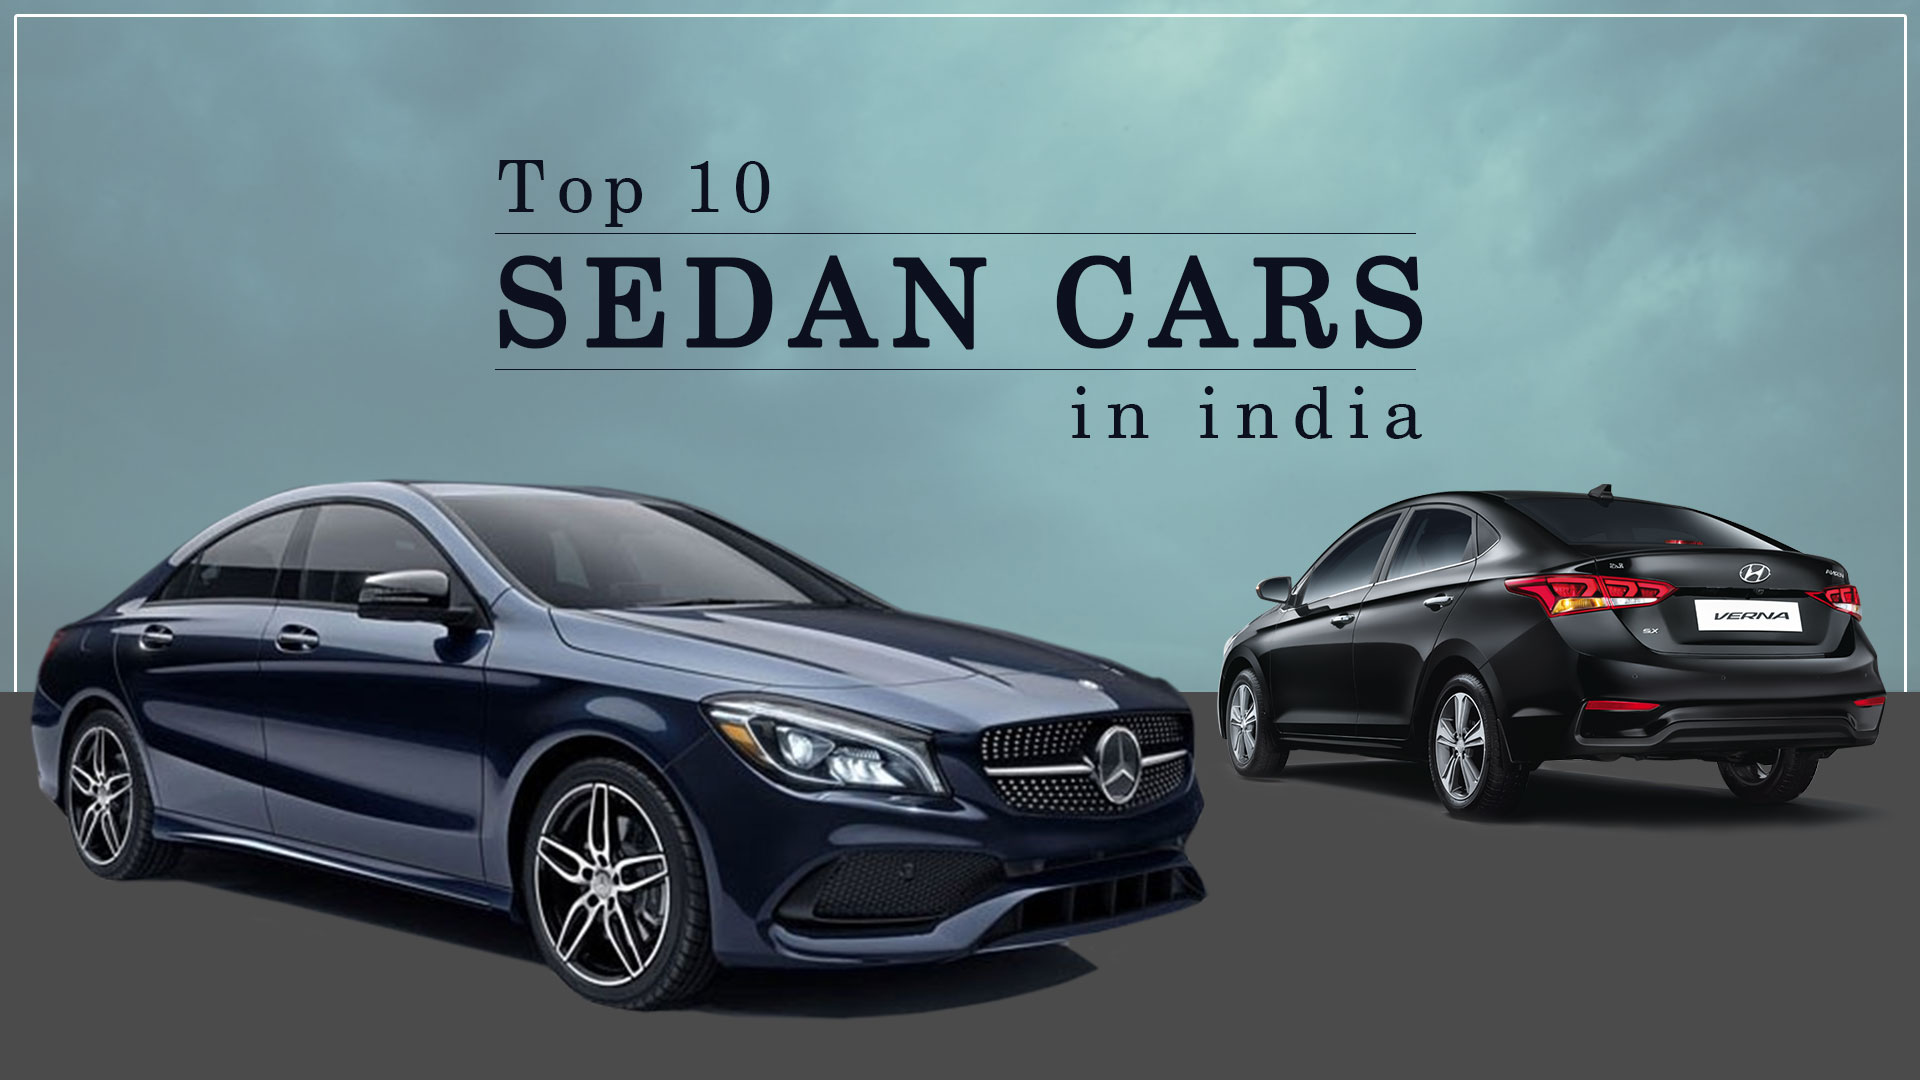 Sedan Cars In India: List of Top 10 Sedan Cars You Should Buy Today